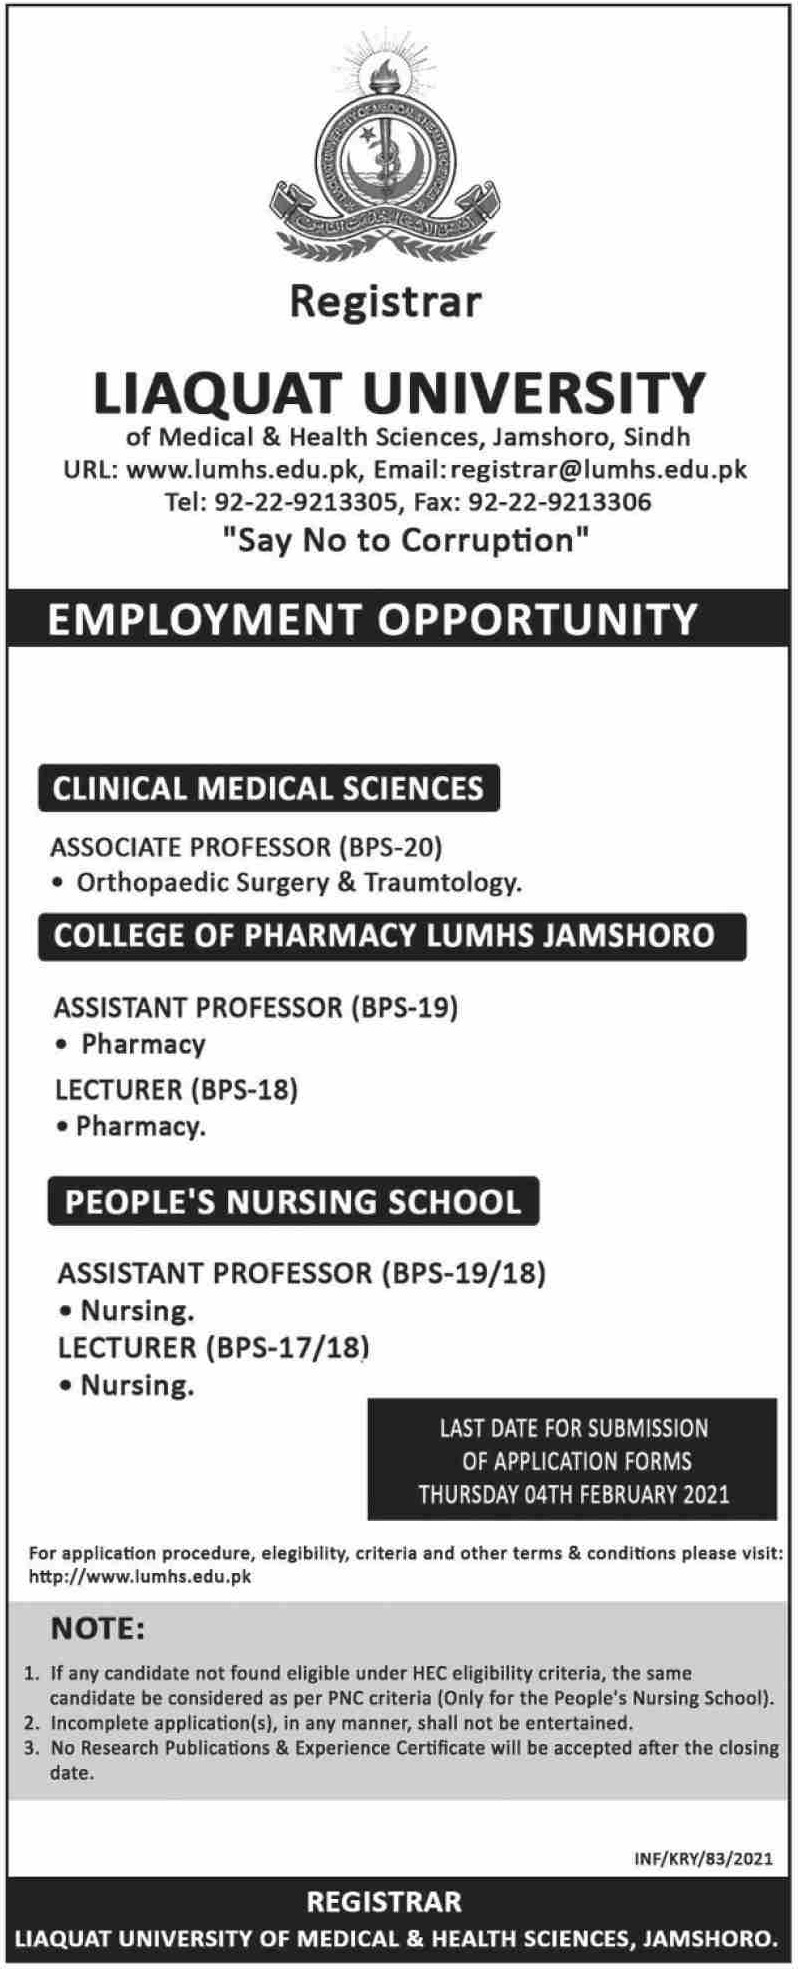 Liaquat University of Medical & Health Sciences Jamshoro Jobs January 2021